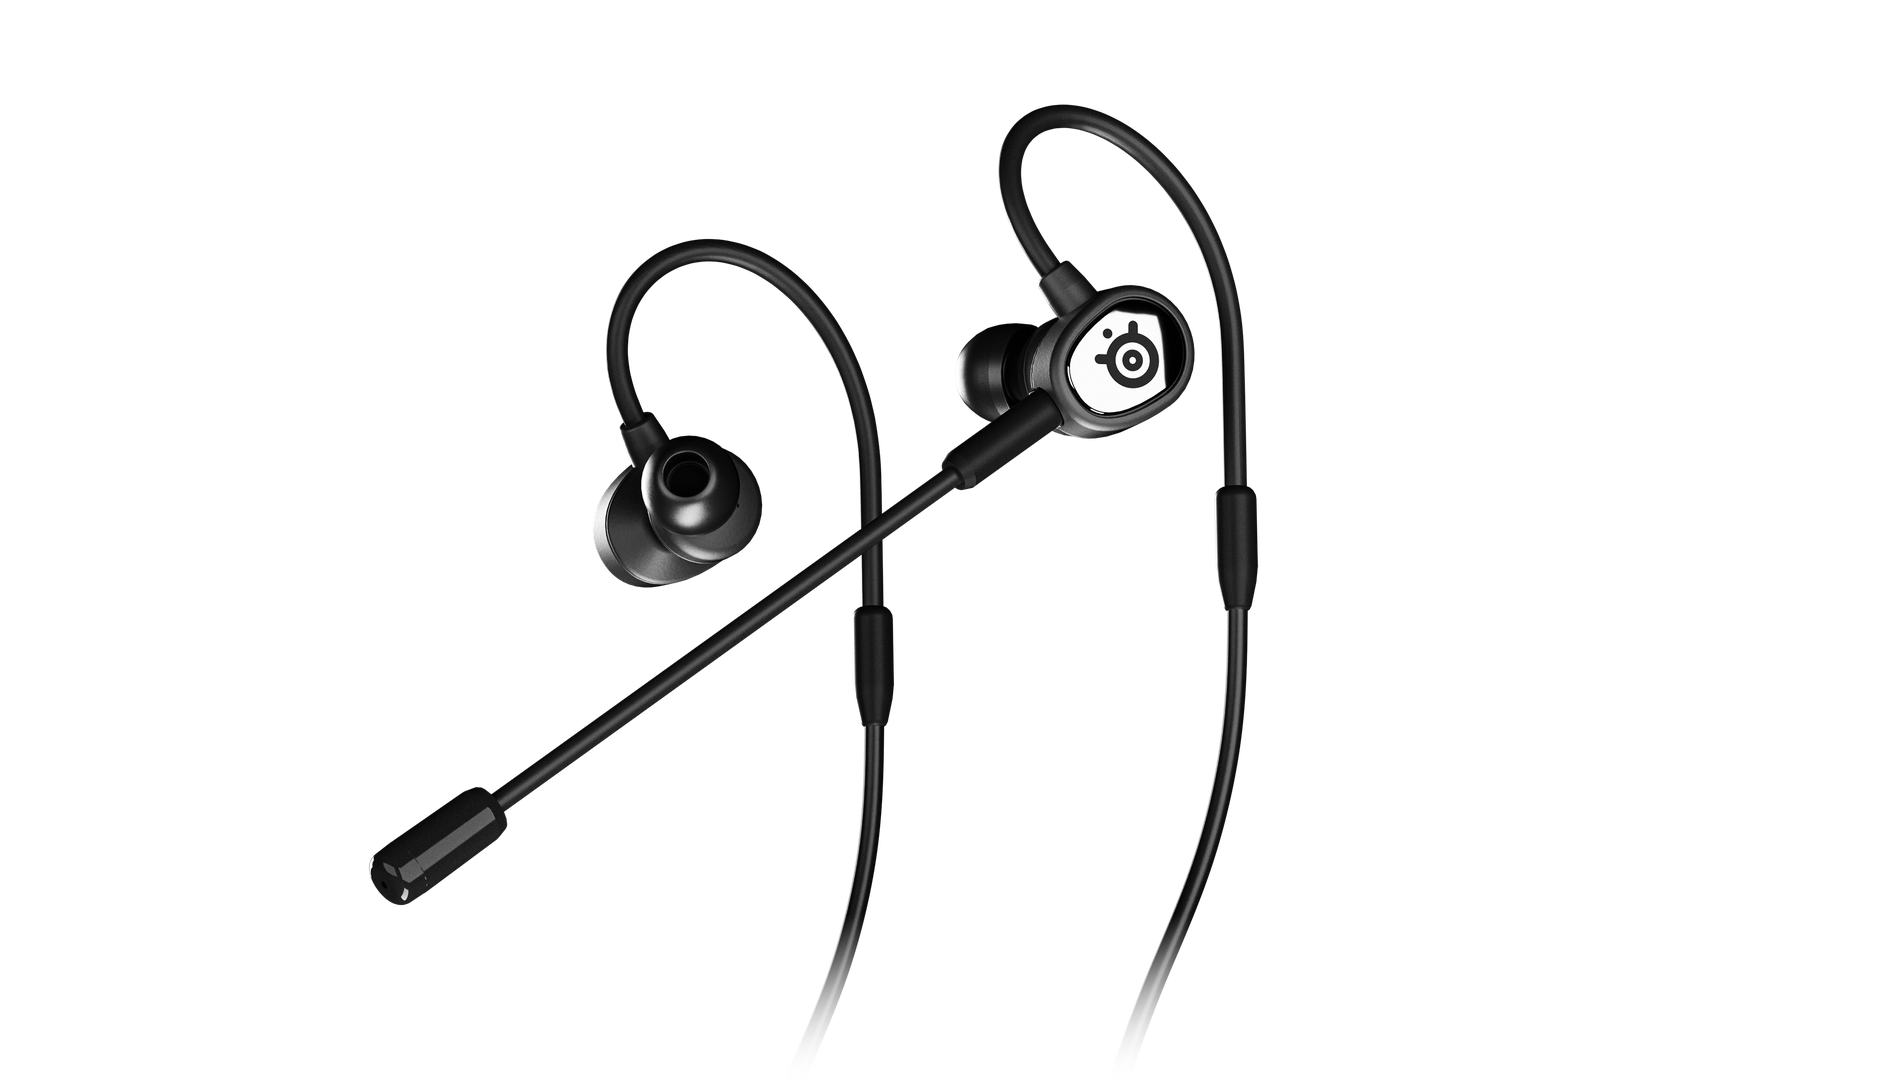 STEELSERIES TUSQ IN-EAR MOBILE GAMING HEADSET - 61650